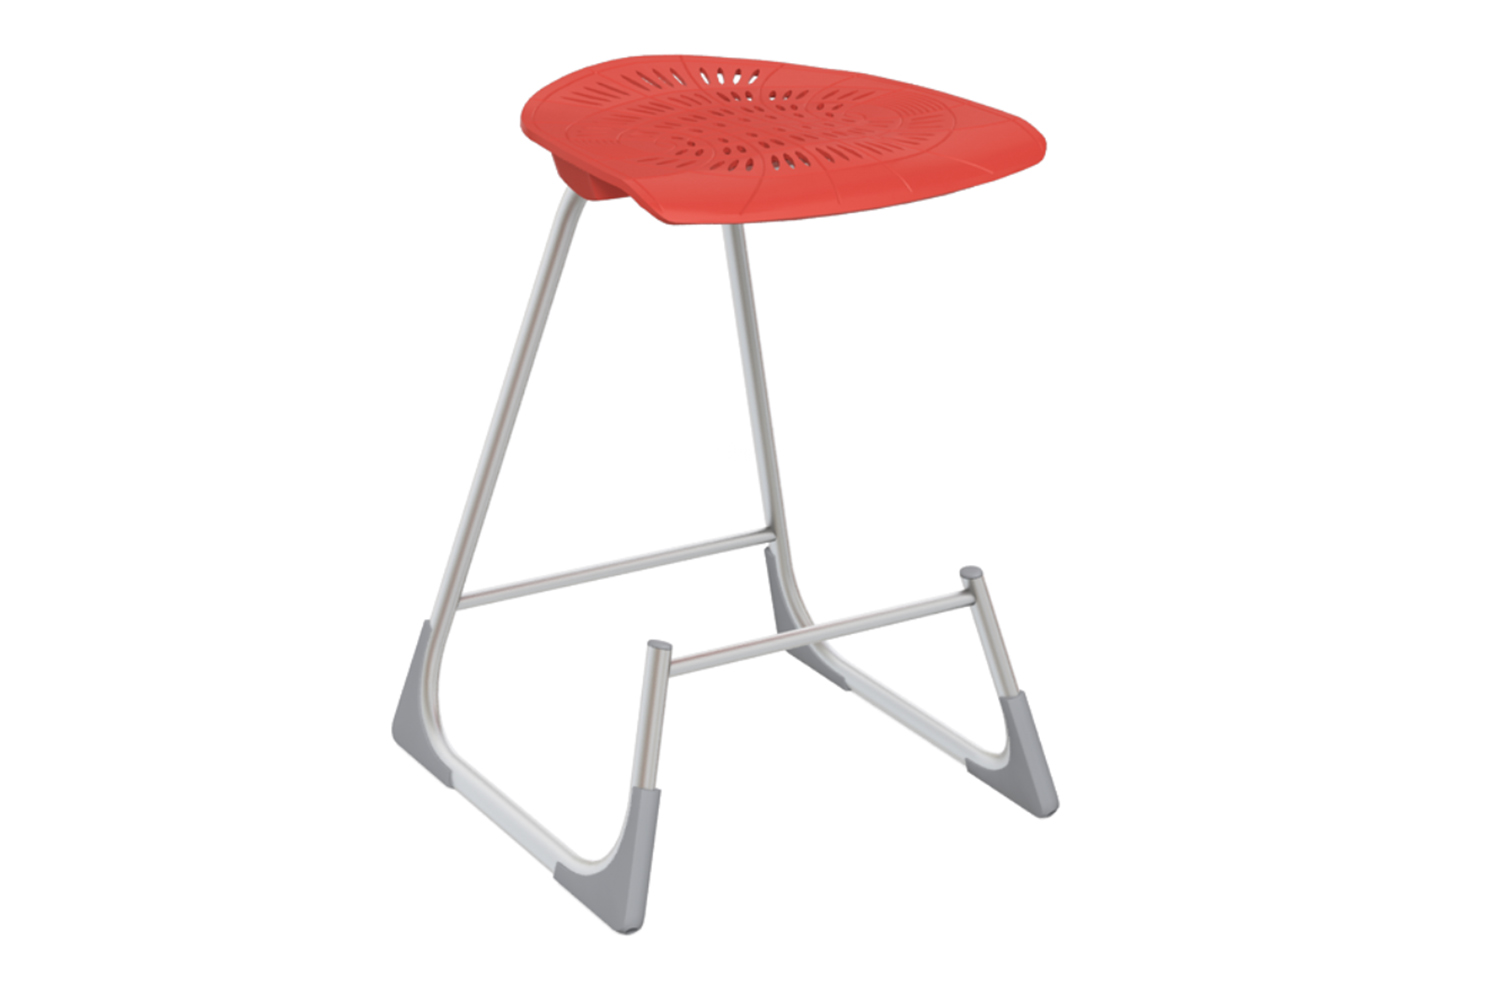 Coupled with flexible seats and foot rails, the Bodyfurn lab stool can move forward or backward with a shift in weight.